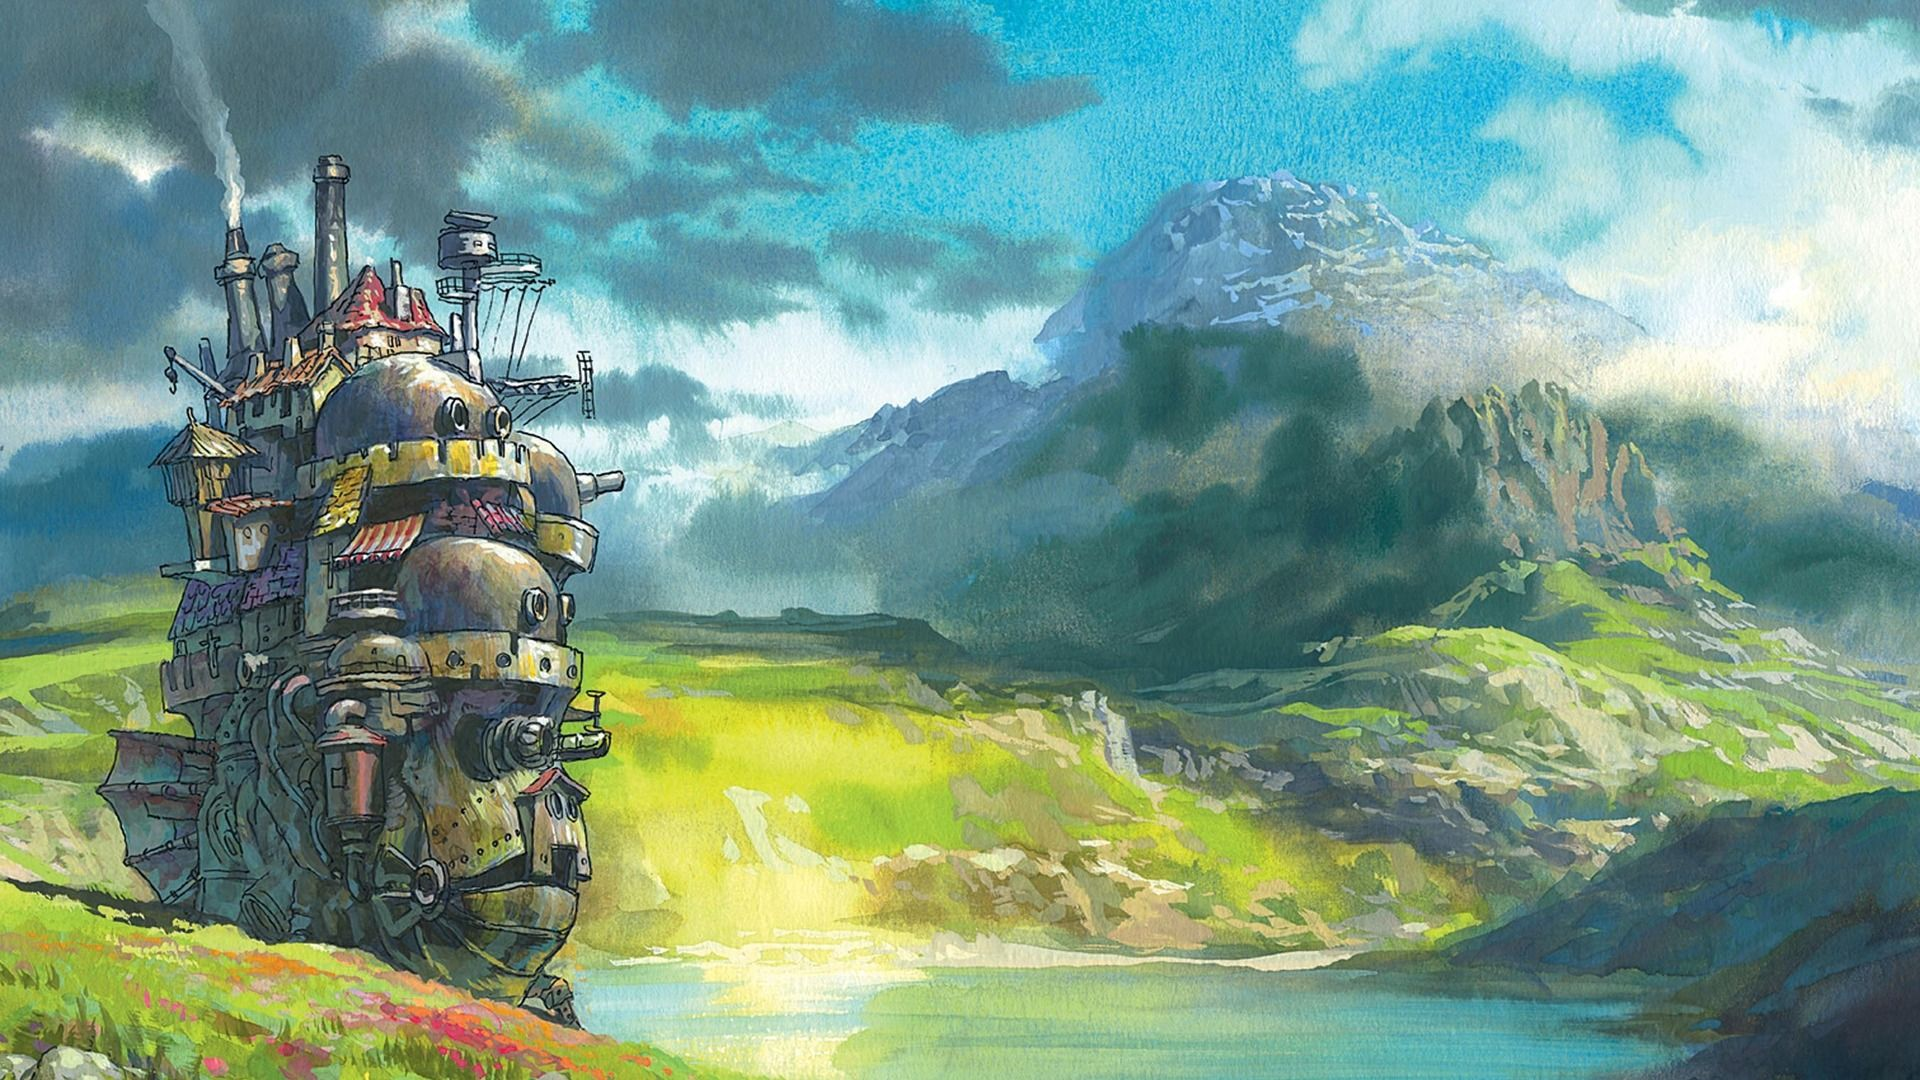 Studio Ghibli Hd Wallpaper 1920x1080 Id 46392 Howls Moving Castle Wallpaper Ghibli Art Studio Ghibli Background